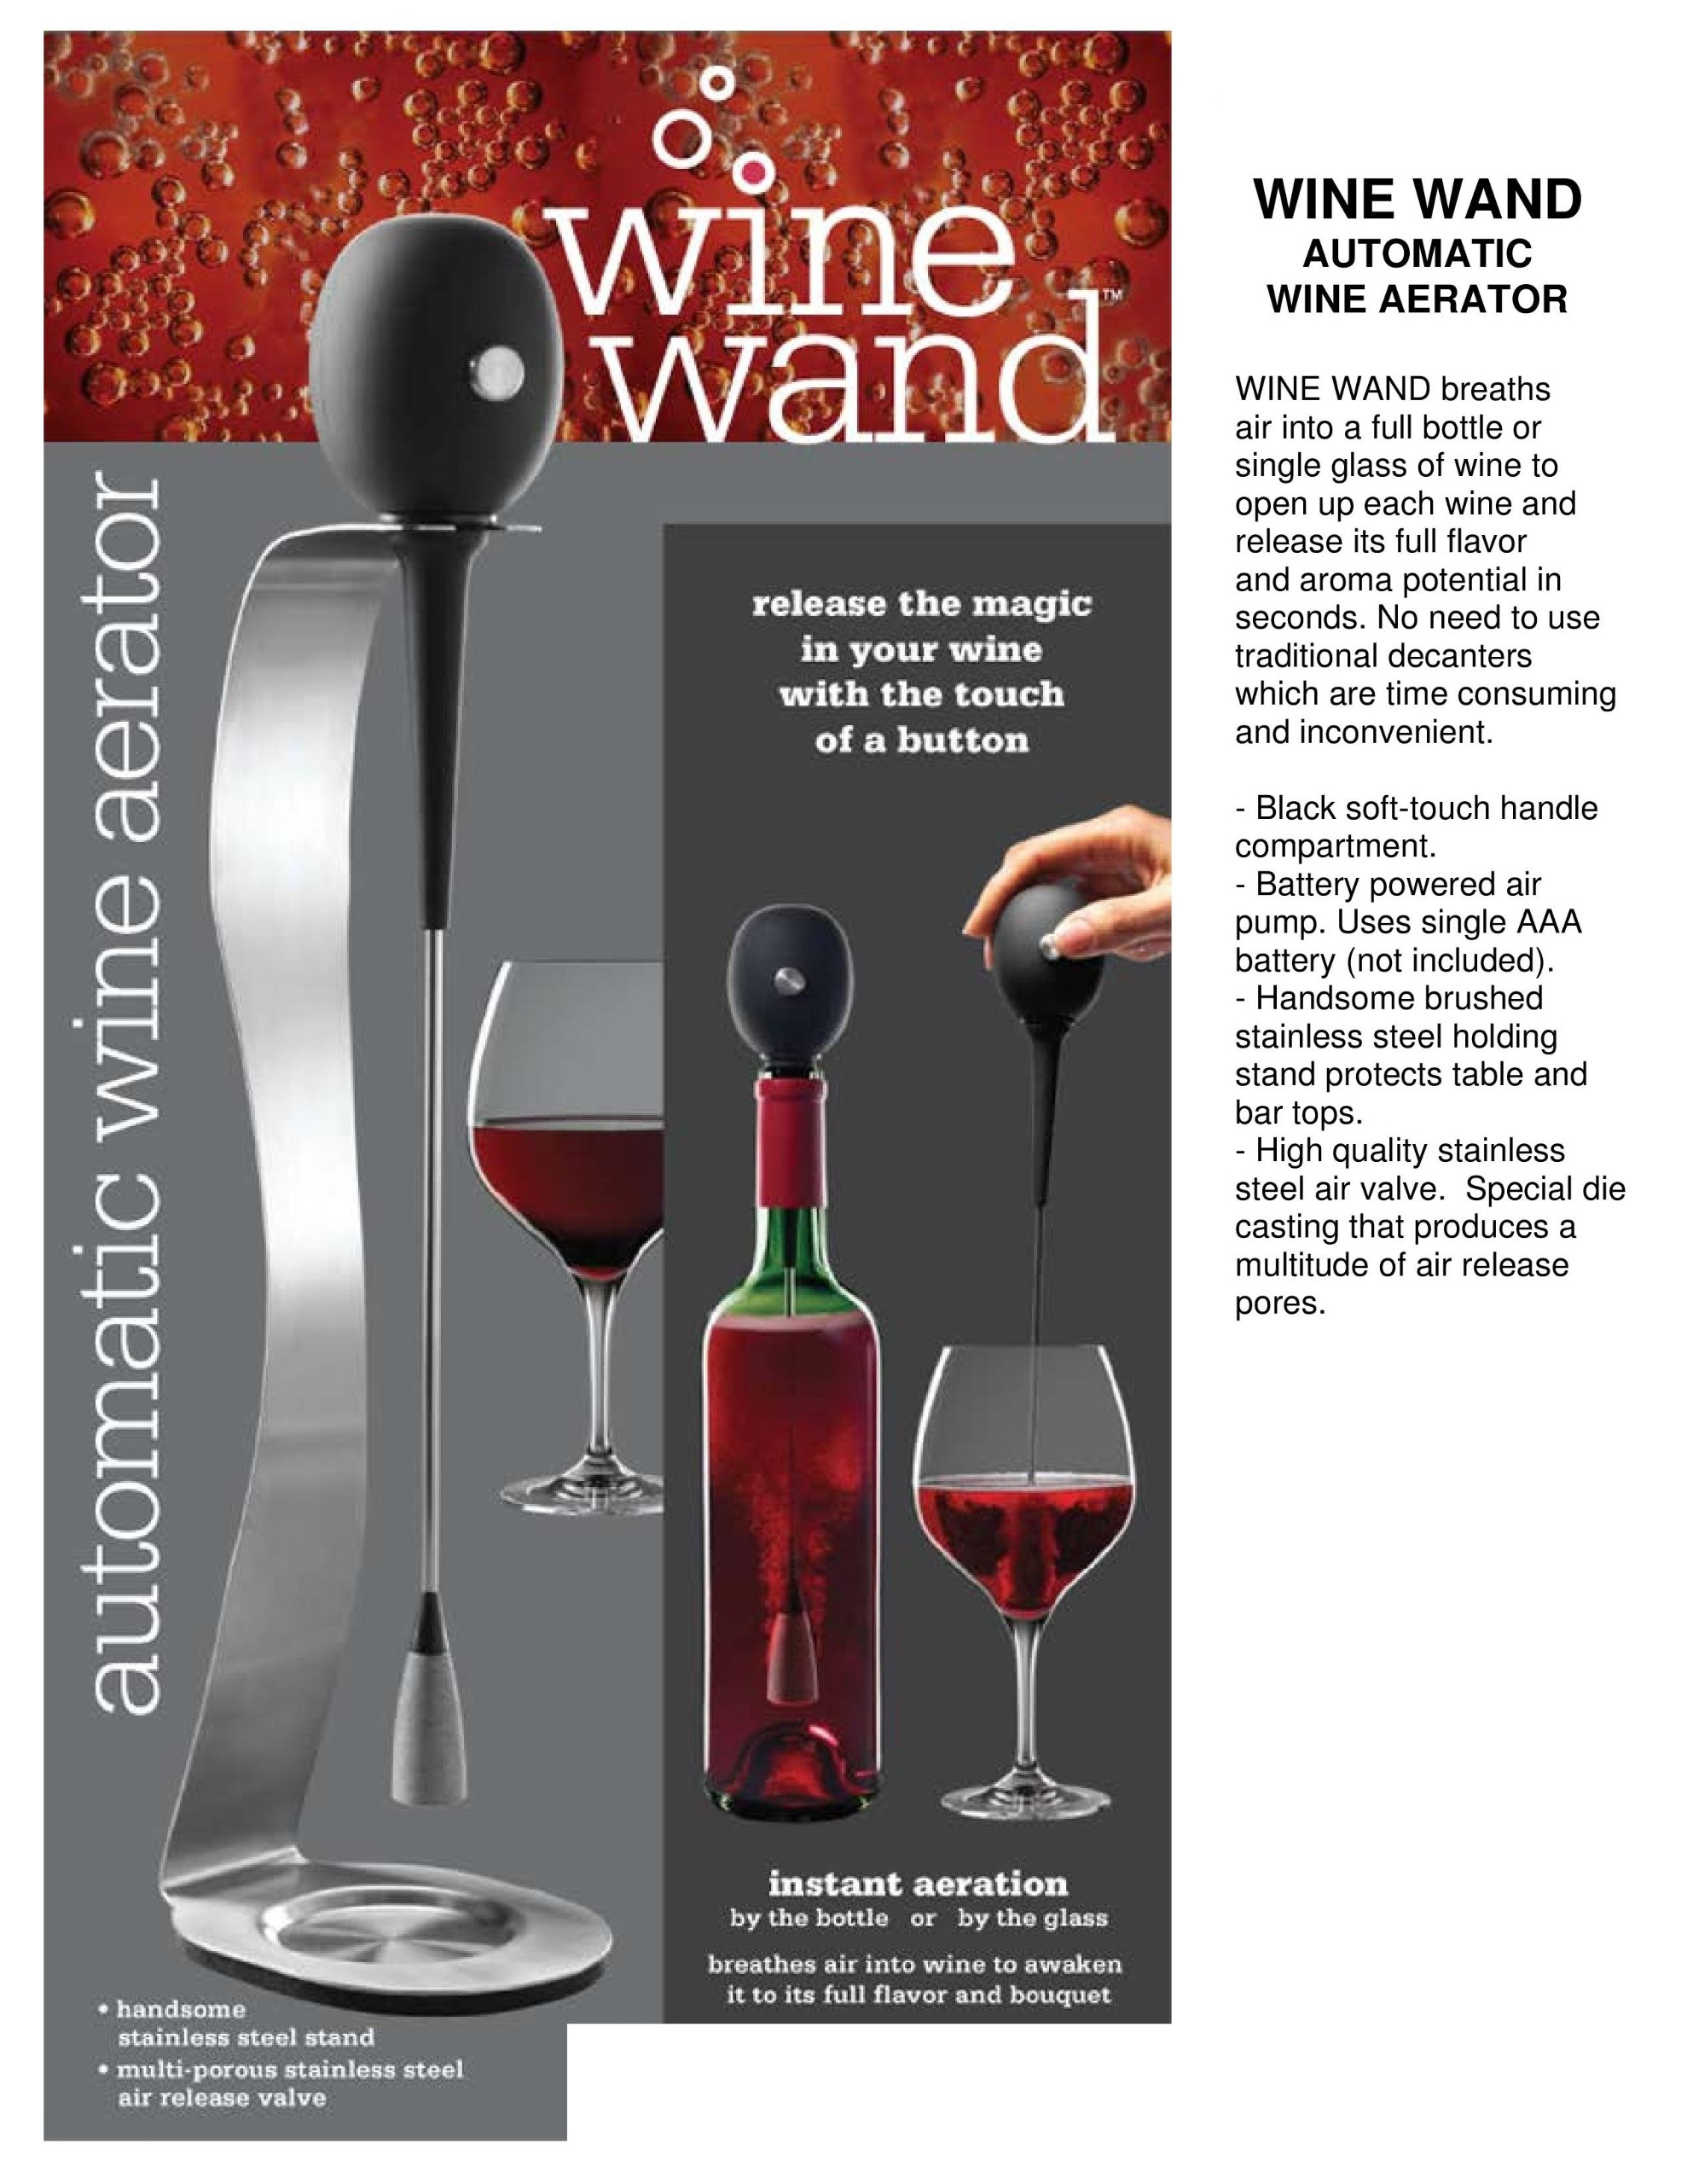 Prodyne Wine Wand Automatic Wine Aerator with Stainless Steel Stand